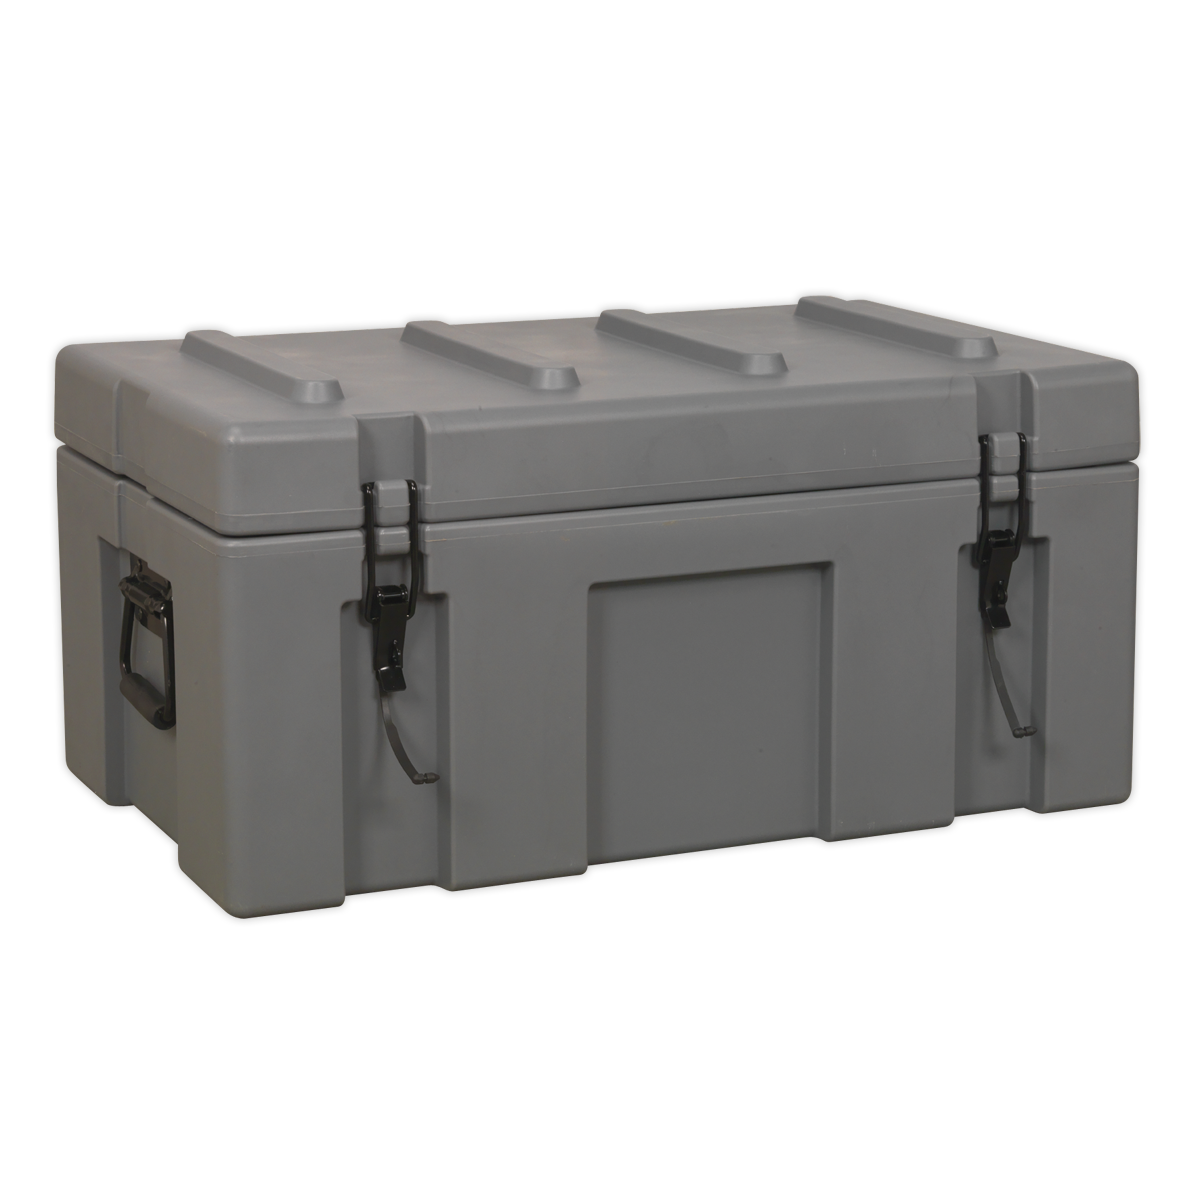 Rota-Mould Cargo Case 710mm   SEALEY RMC710 by Sealey   New